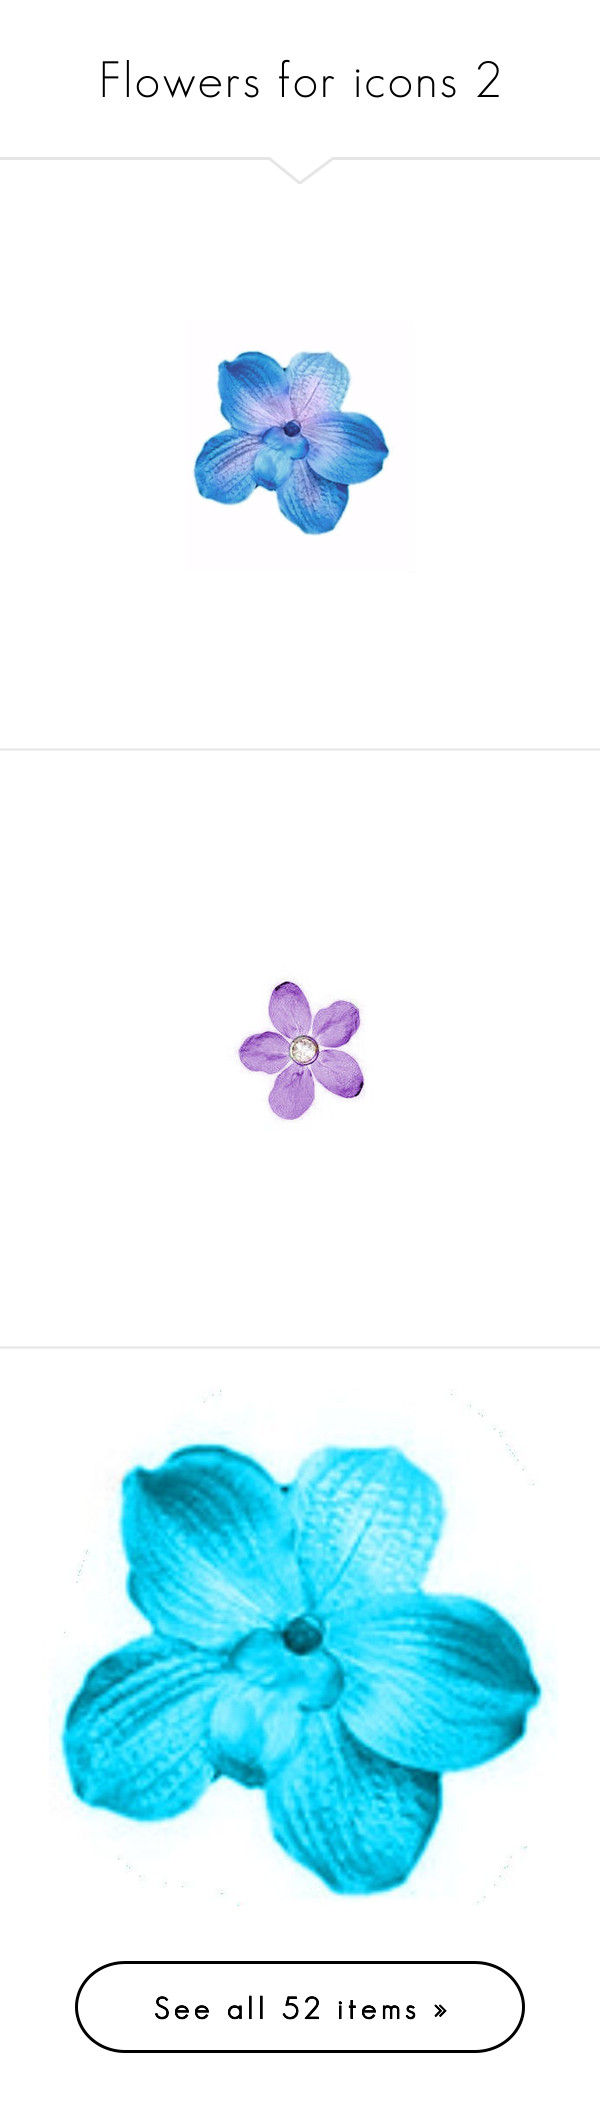 """Flowers for icons 2"" by amaya99 ❤ liked on Polyvore featuring flowers, icon flowers, flower fillers, fillers - flowers, fillers, purple, purple fillers, backgrounds, doodles and text"